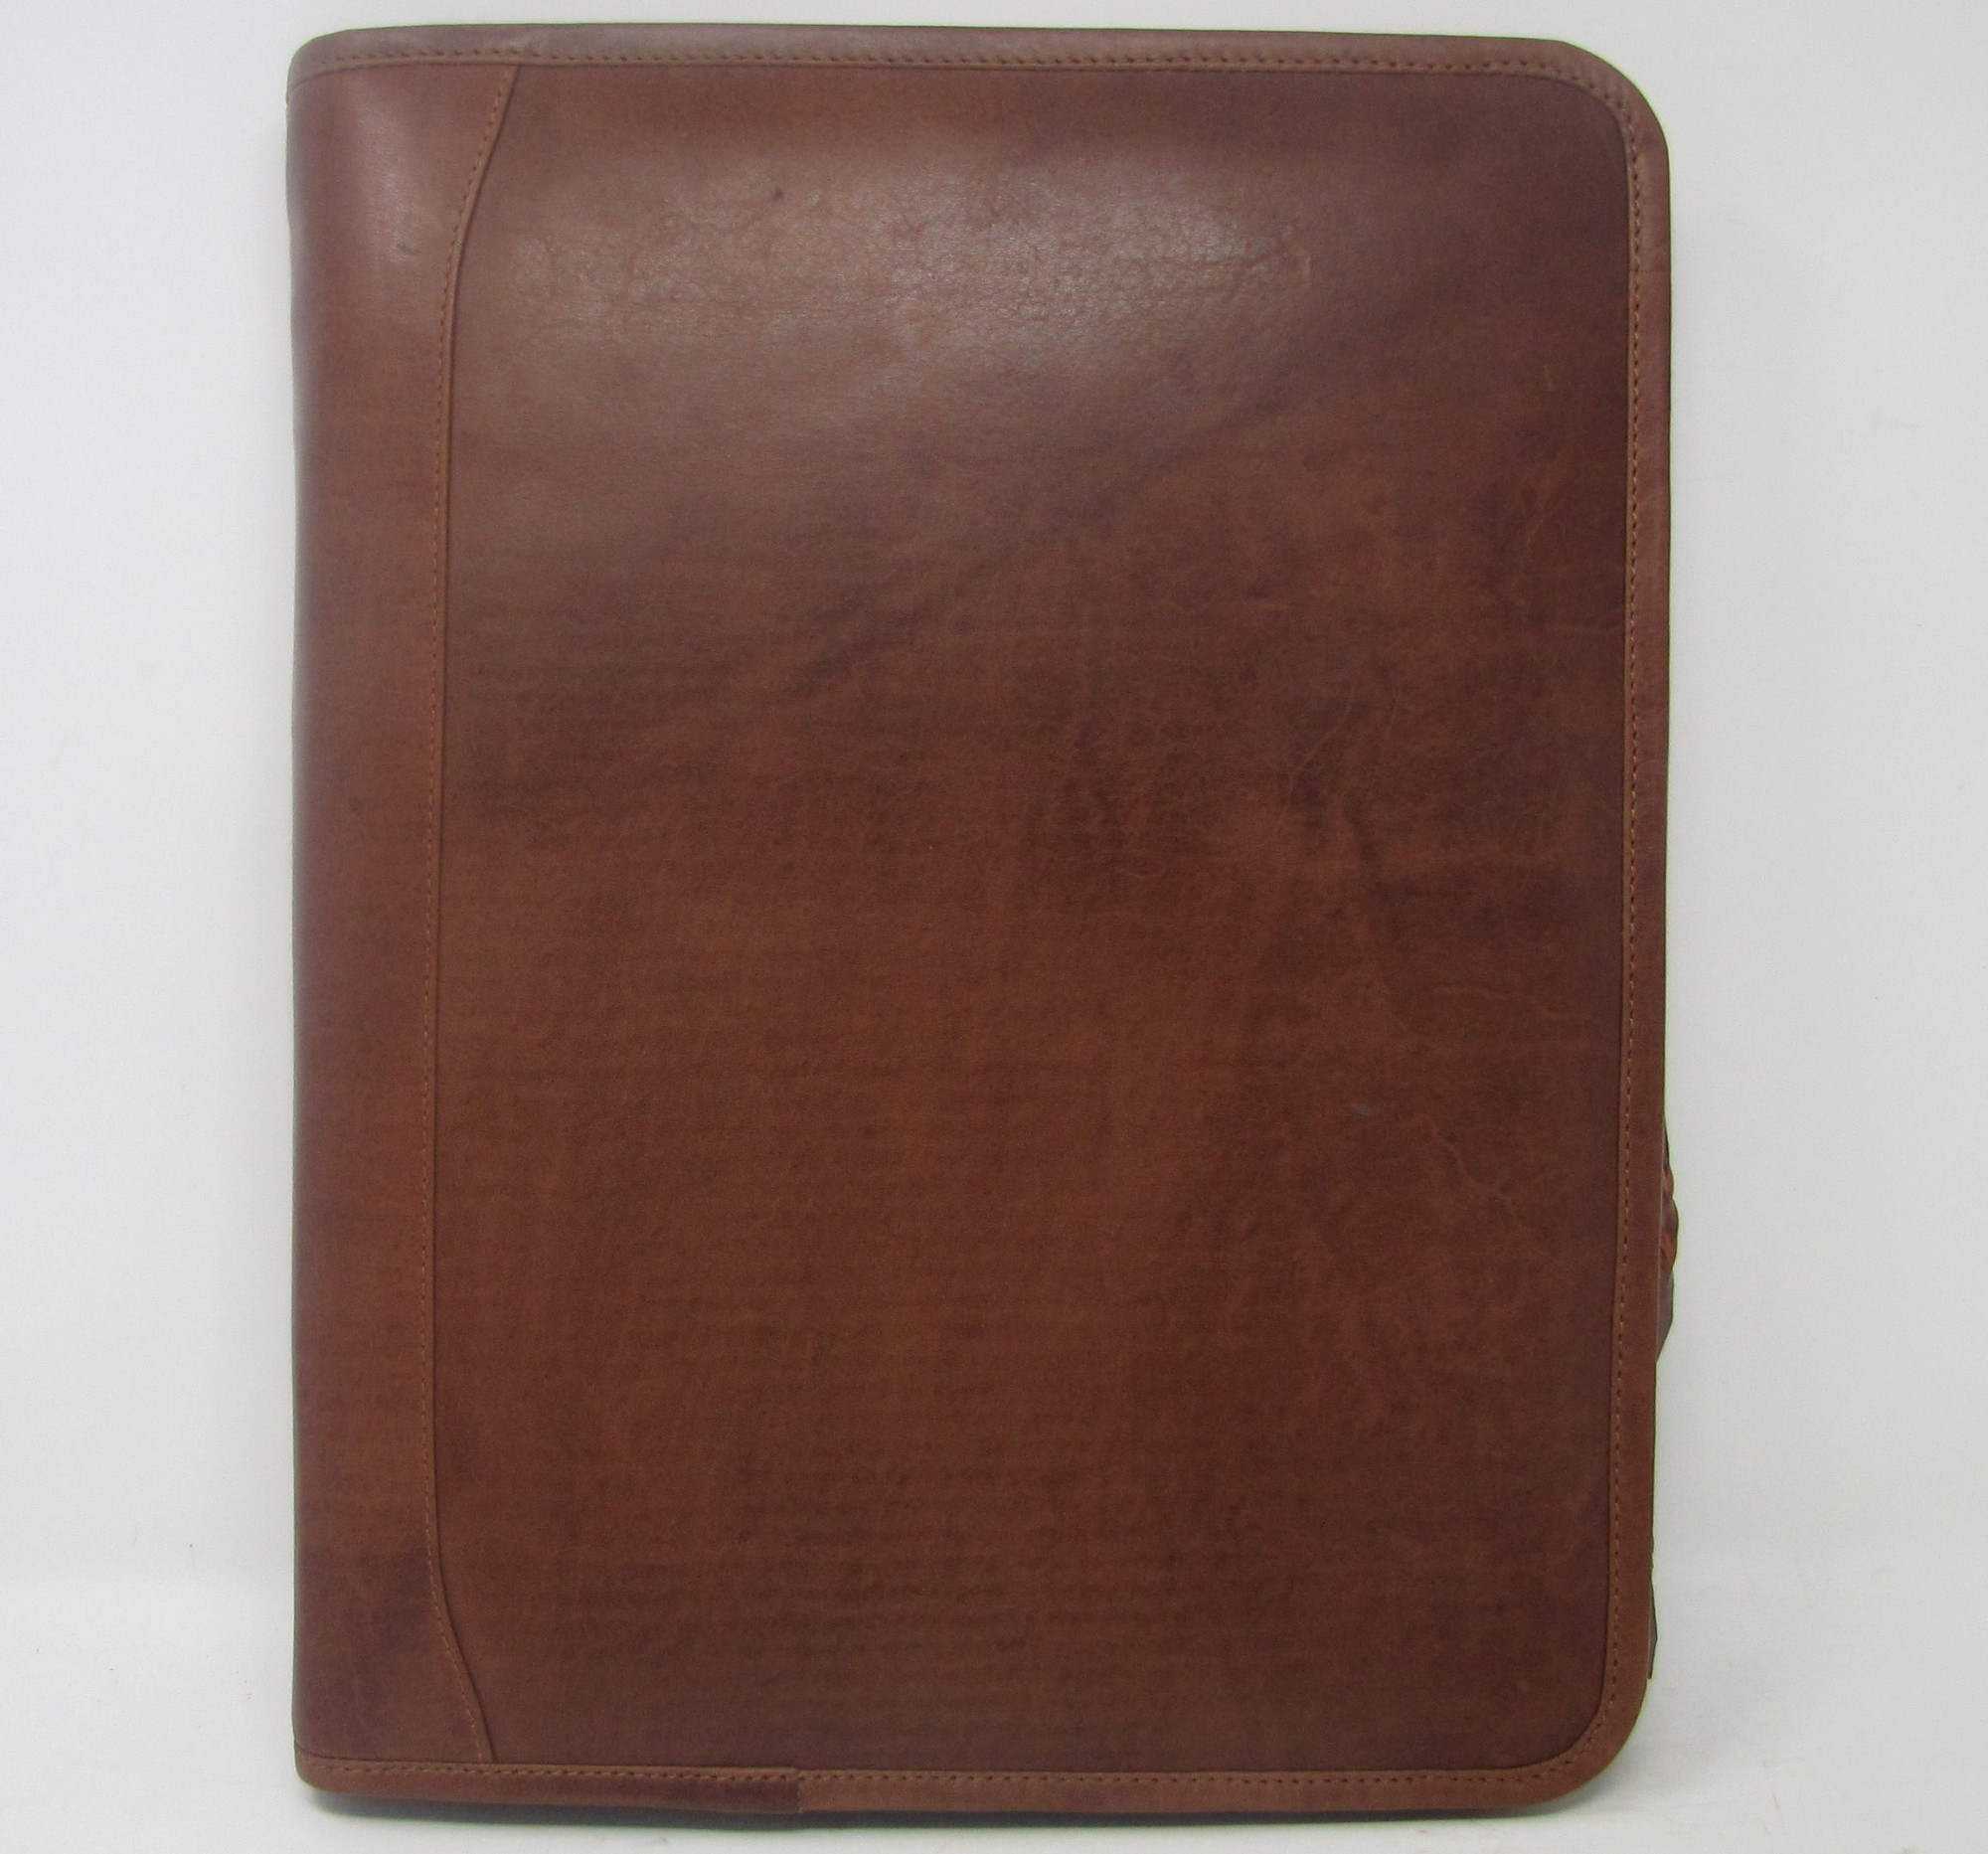 A4 FOLDER PERSONALISED LEATHER LEAVING GIFT NAME AND MESSAGE